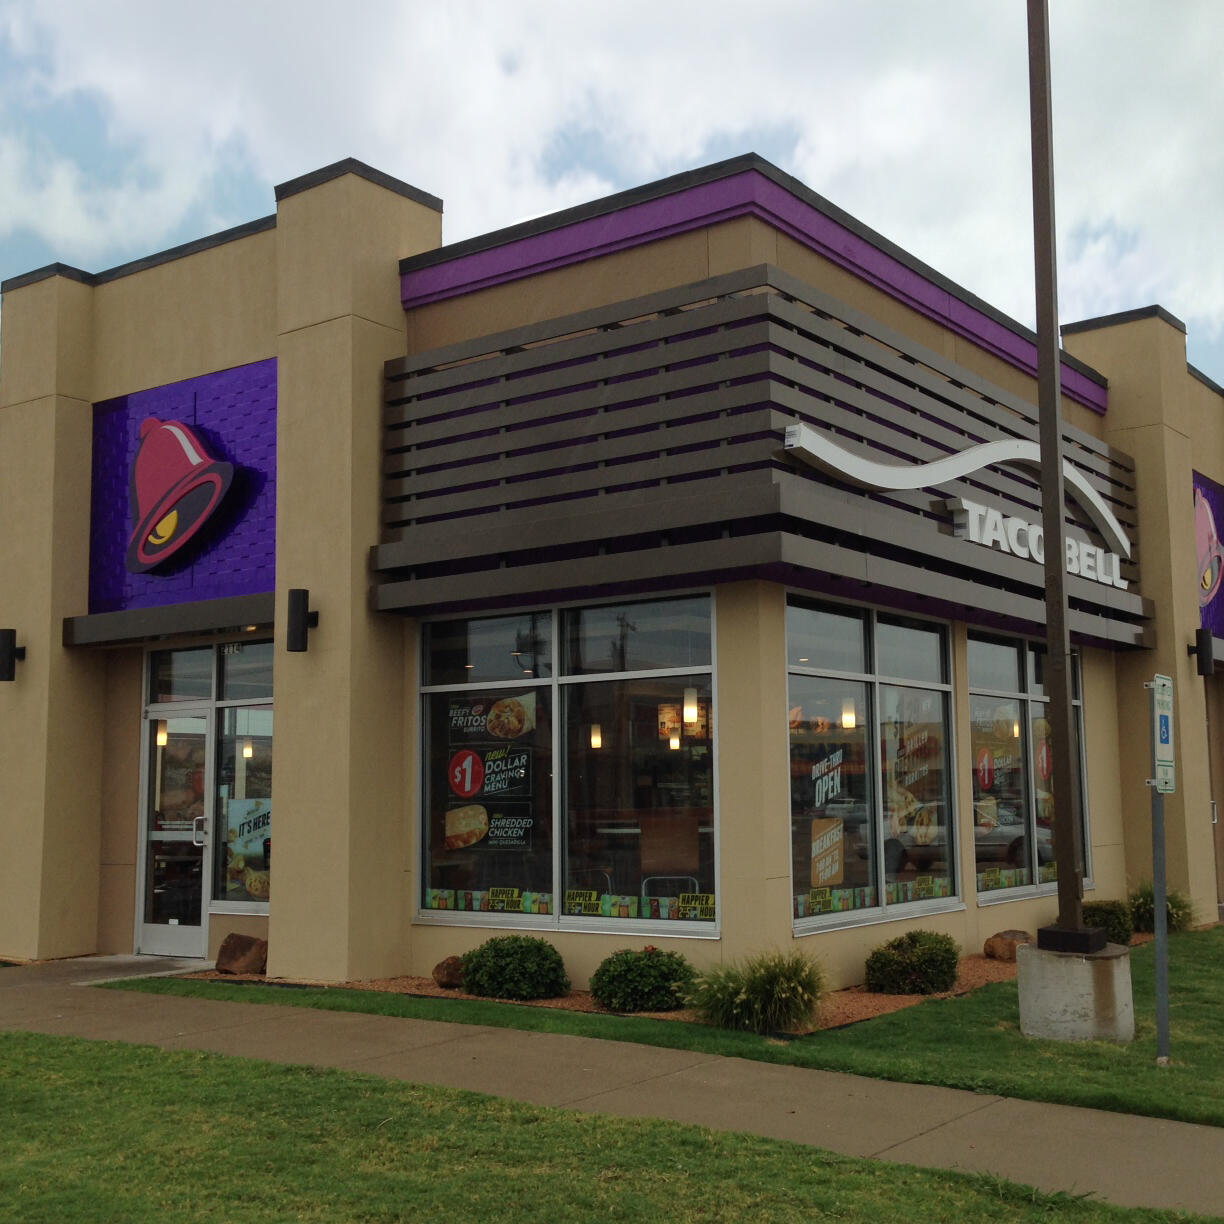 Mesquite Texas Investment property sold - Taco Bell